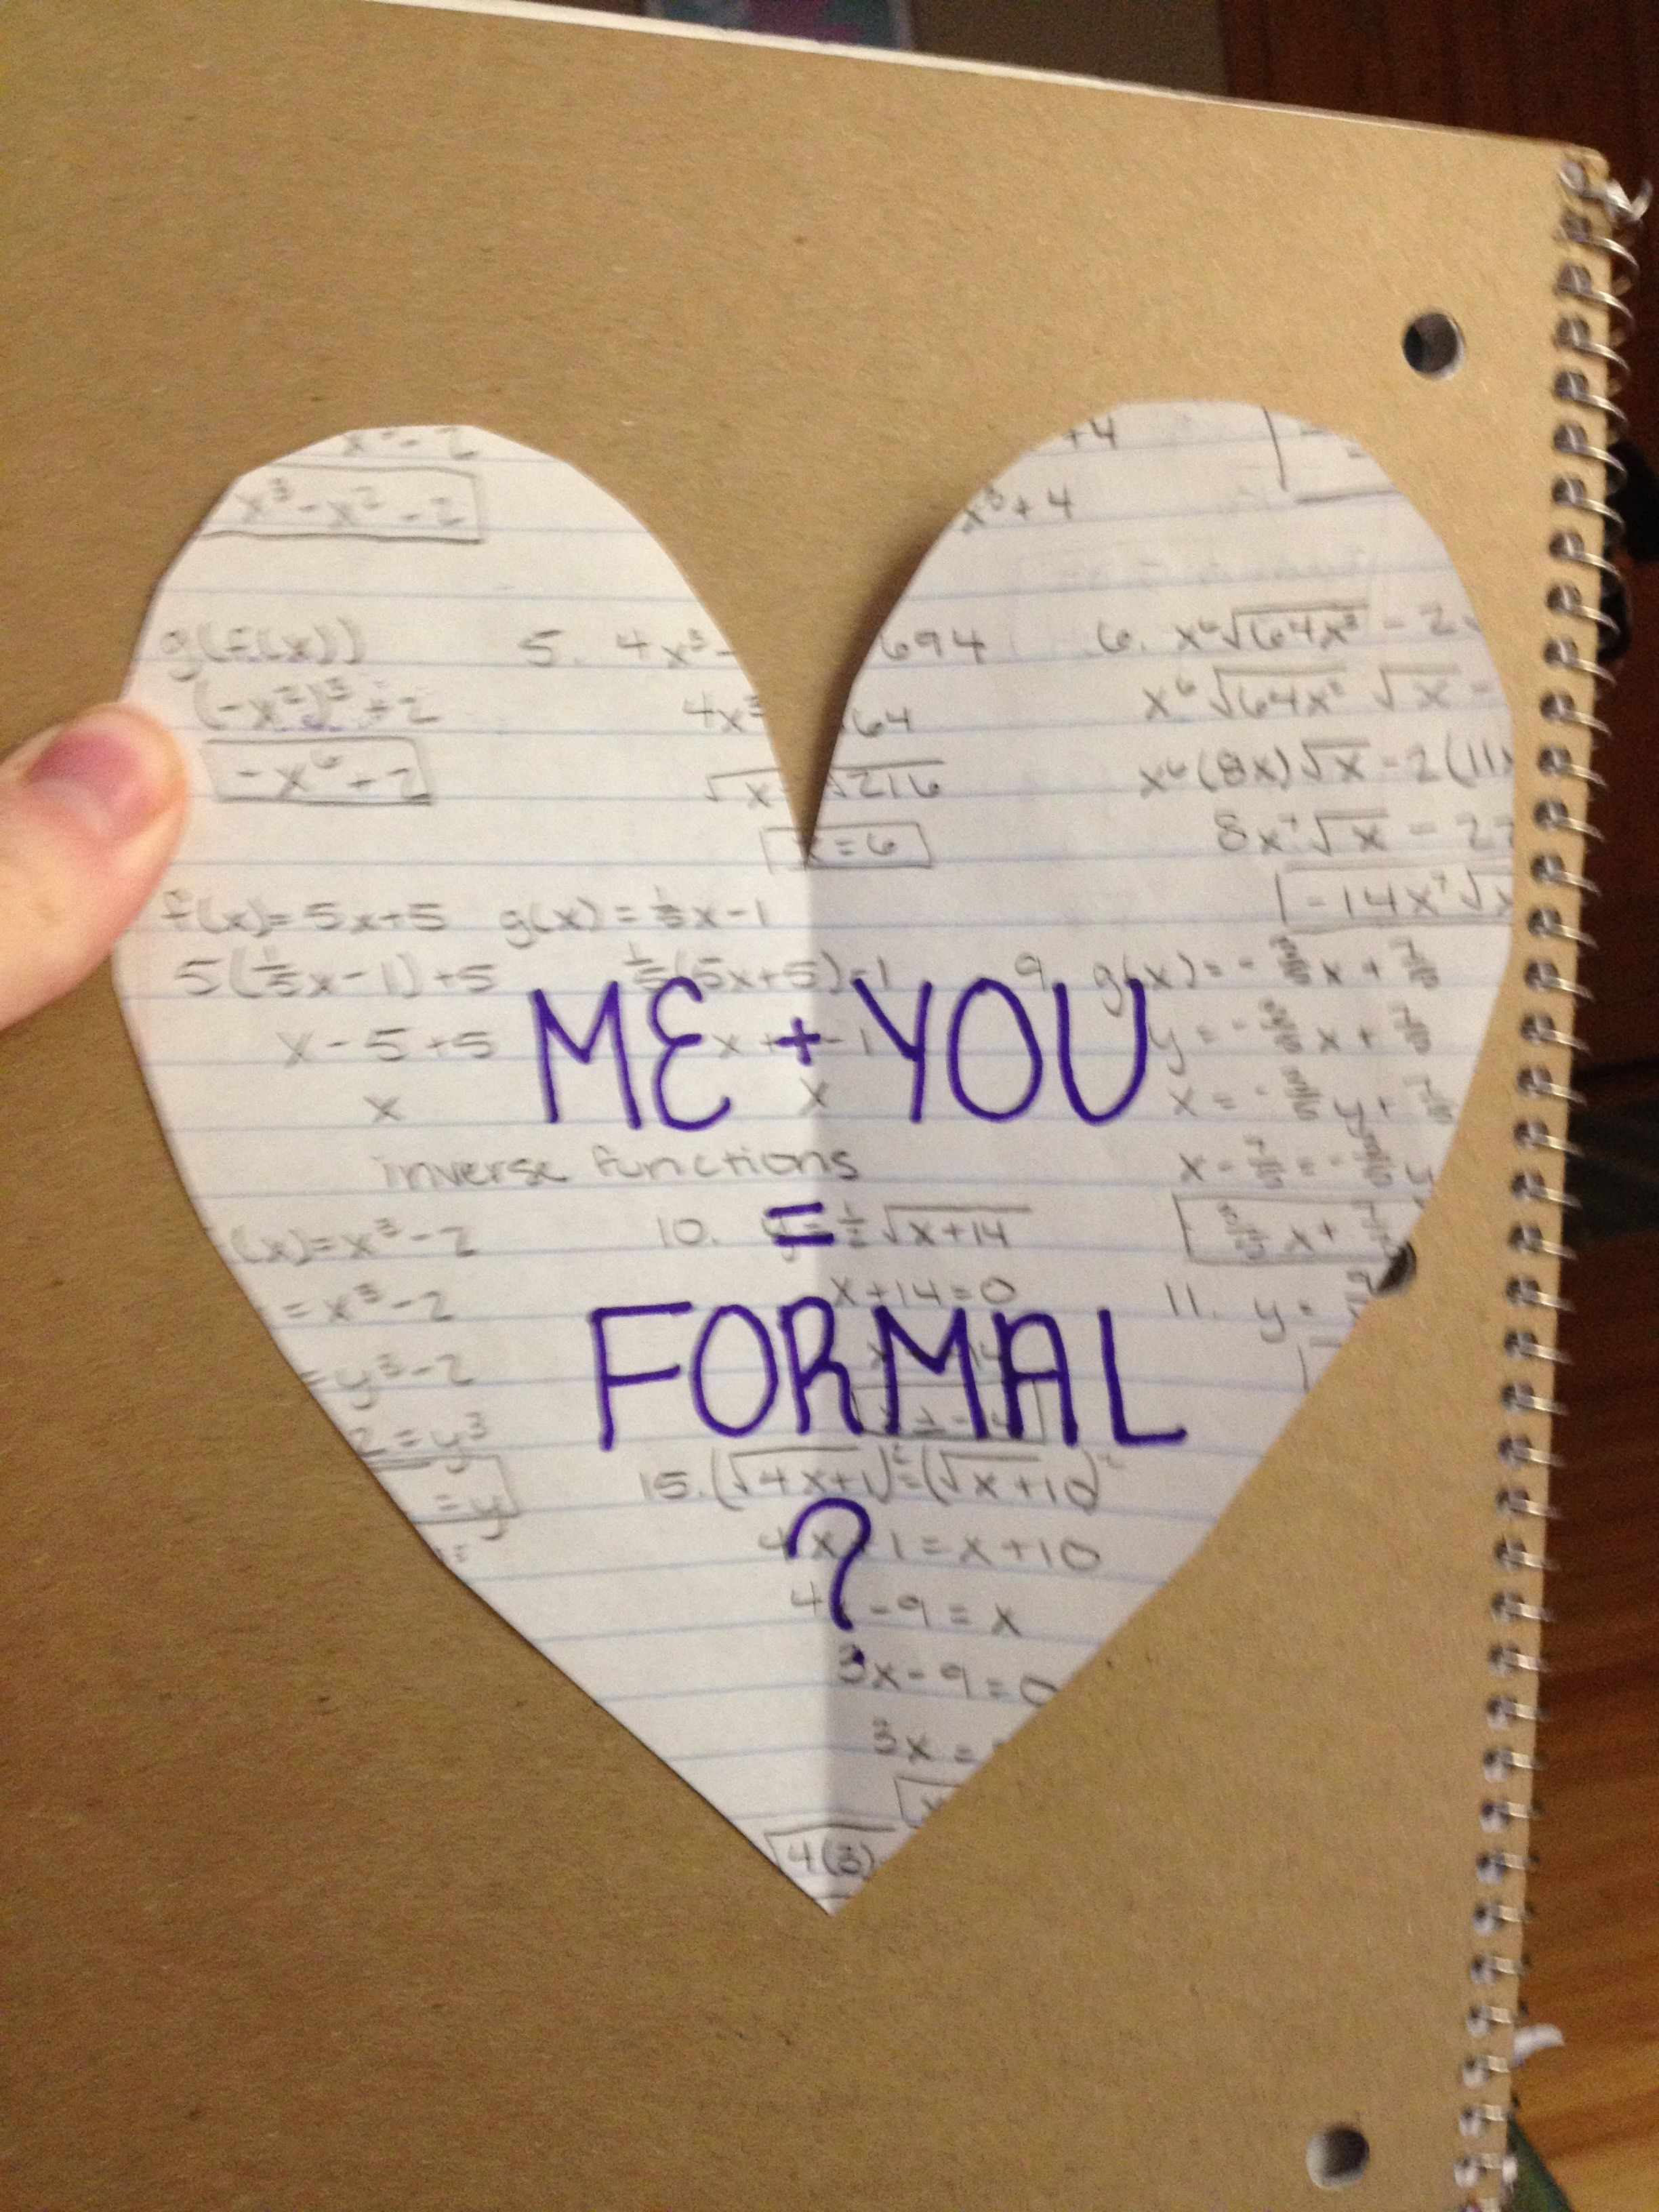 Written on old math homework. Cute way to ask someone to a